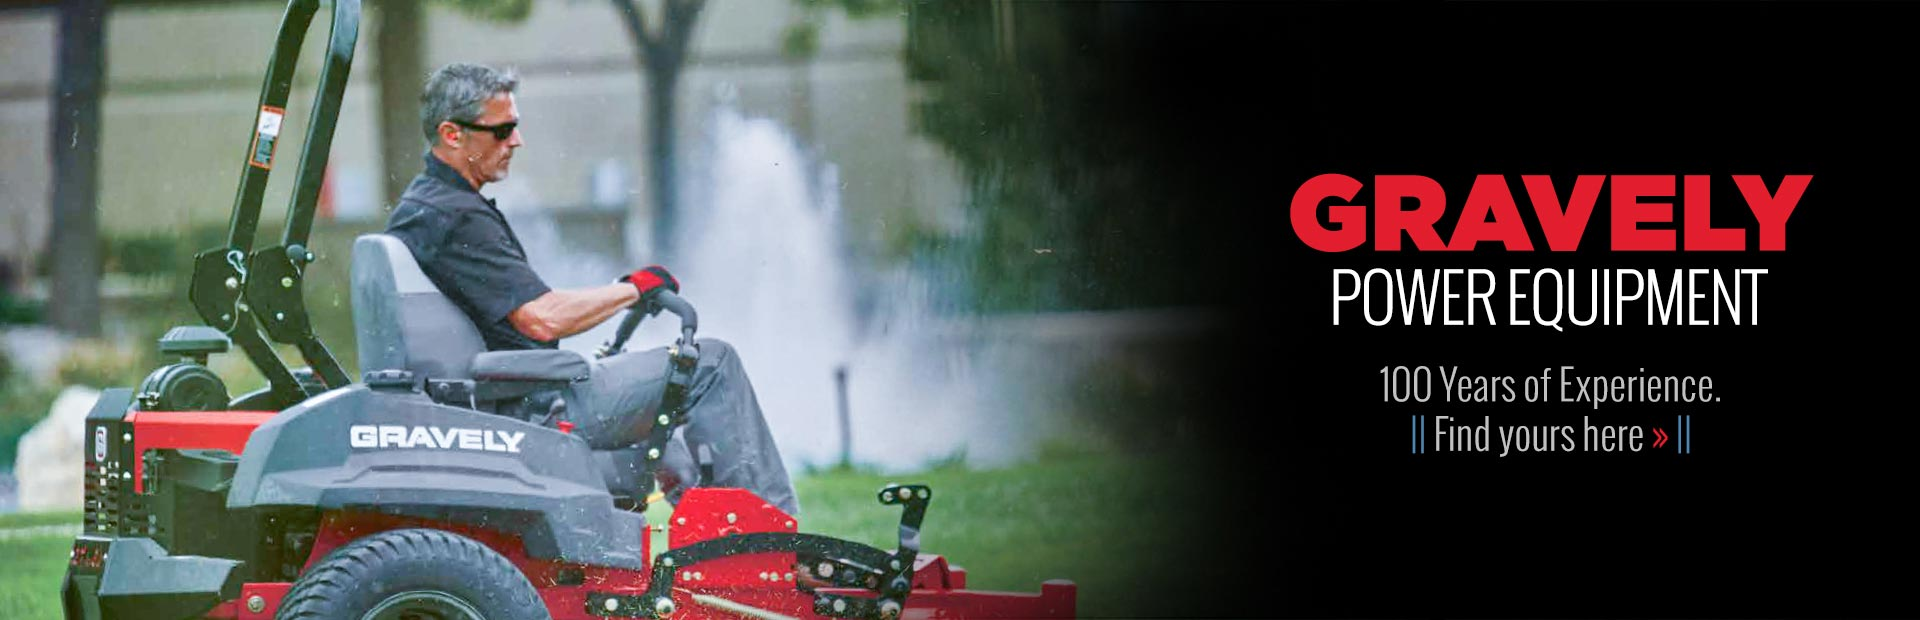 Gravely Power Equipment: 100 Years of Experience